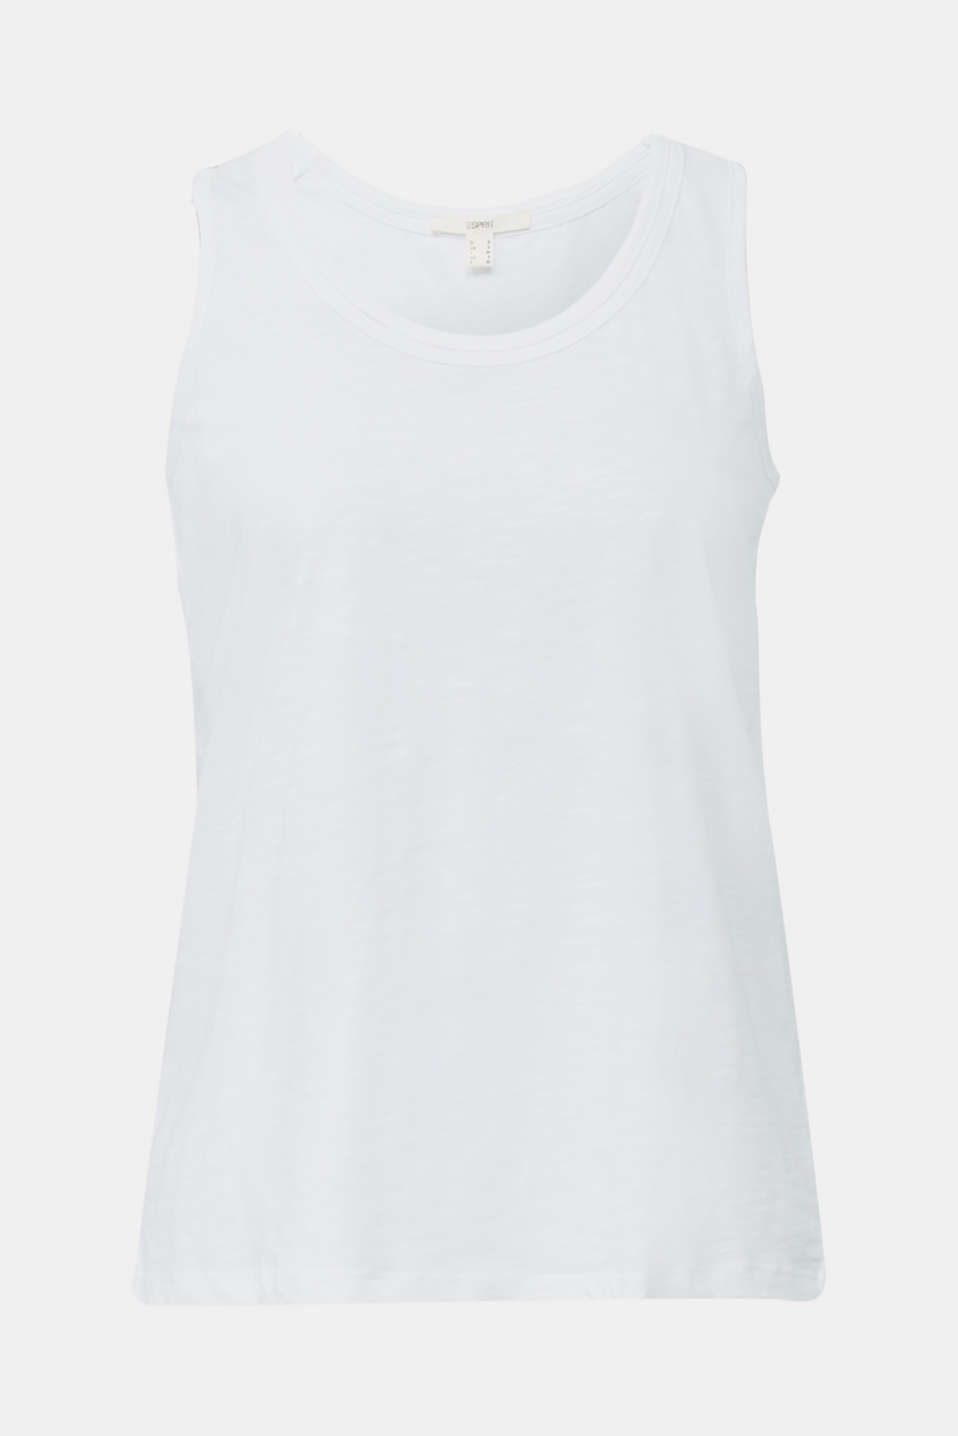 A-line sleeveless top made of 100% organic cotton, WHITE, detail image number 8